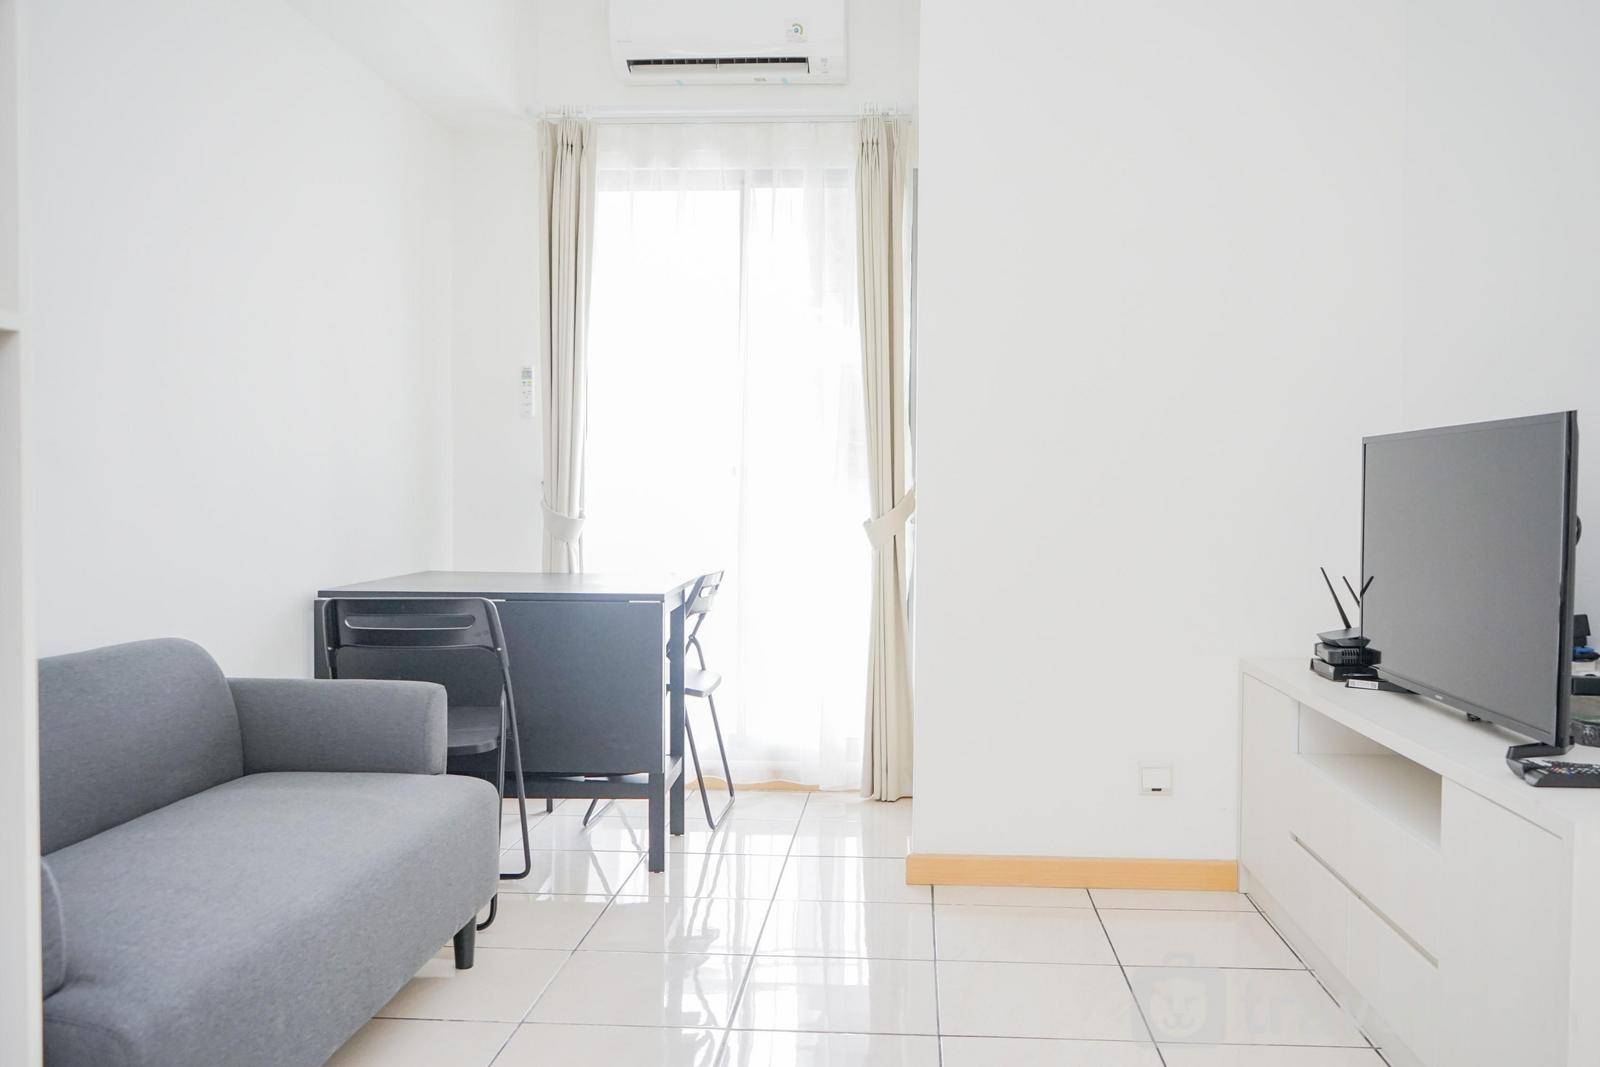 Apartemen M-Town Residence - Fully Furnished with Comfortable Design 2BR Apartment M-Town Residence By Travelio